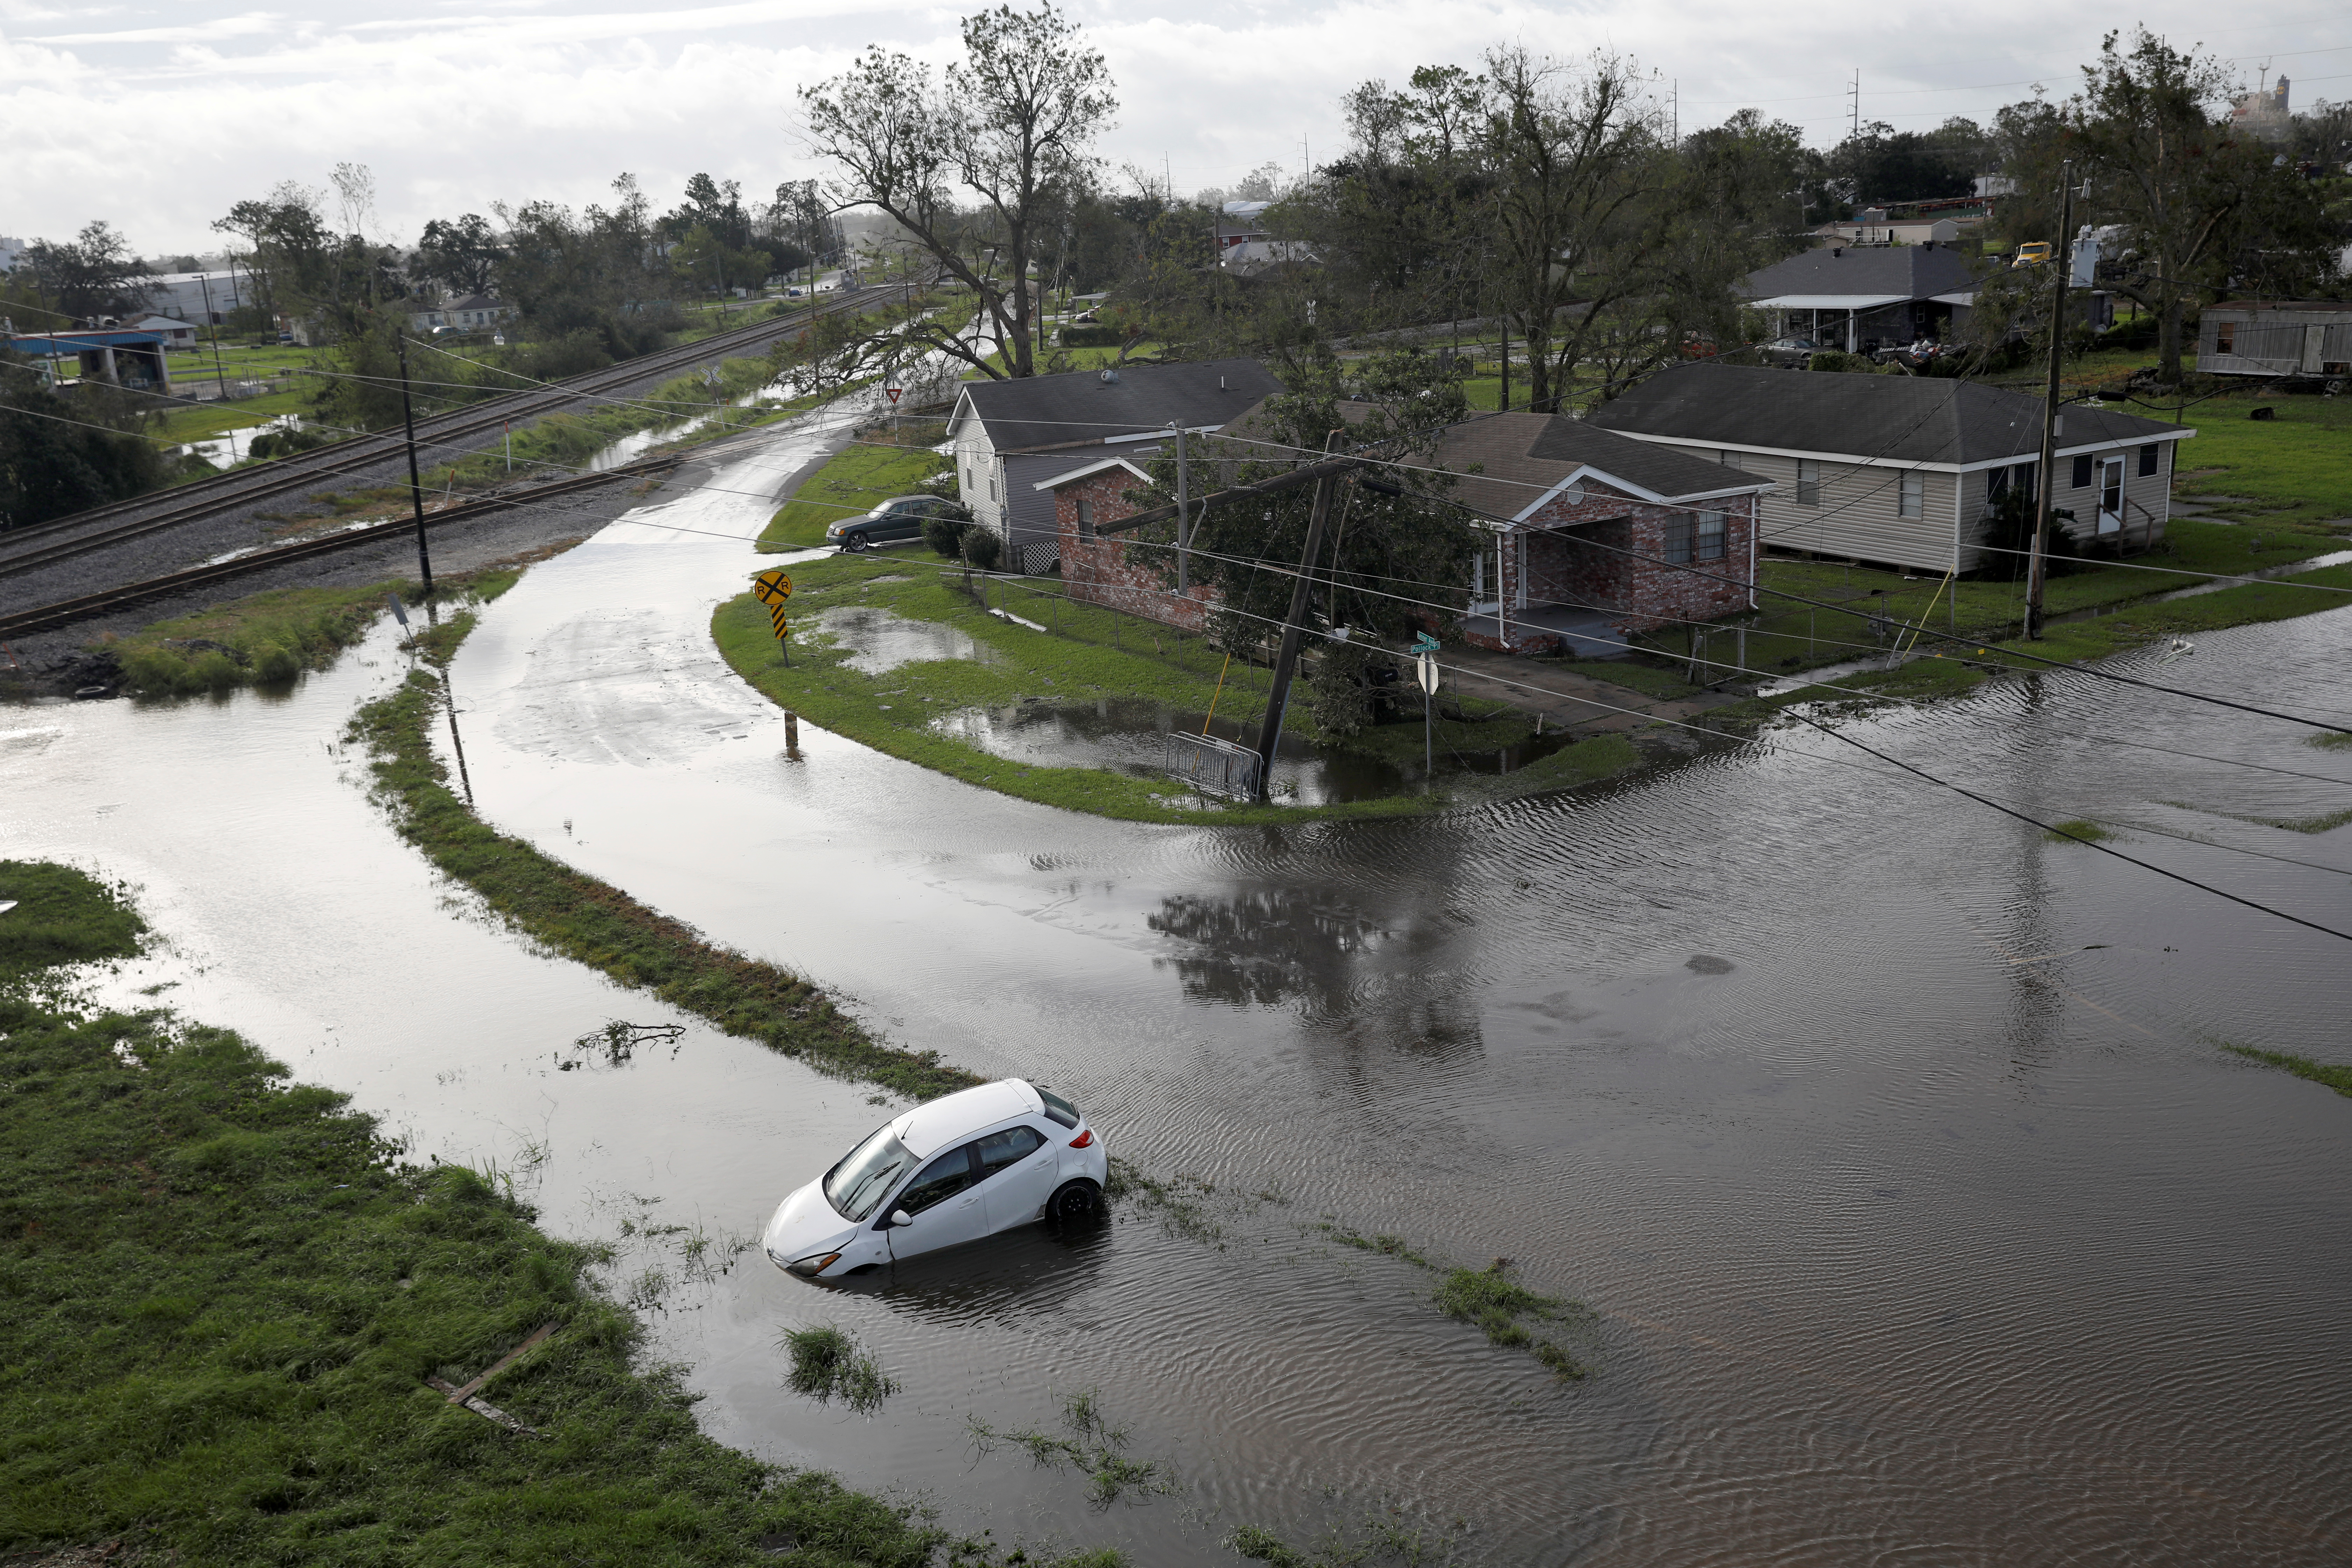 Flooded streets are pictured after Hurricane Ida made landfall in Louisiana, in Kenner, Louisiana, U.S. August 30, 2021. REUTERS/Marco Bello